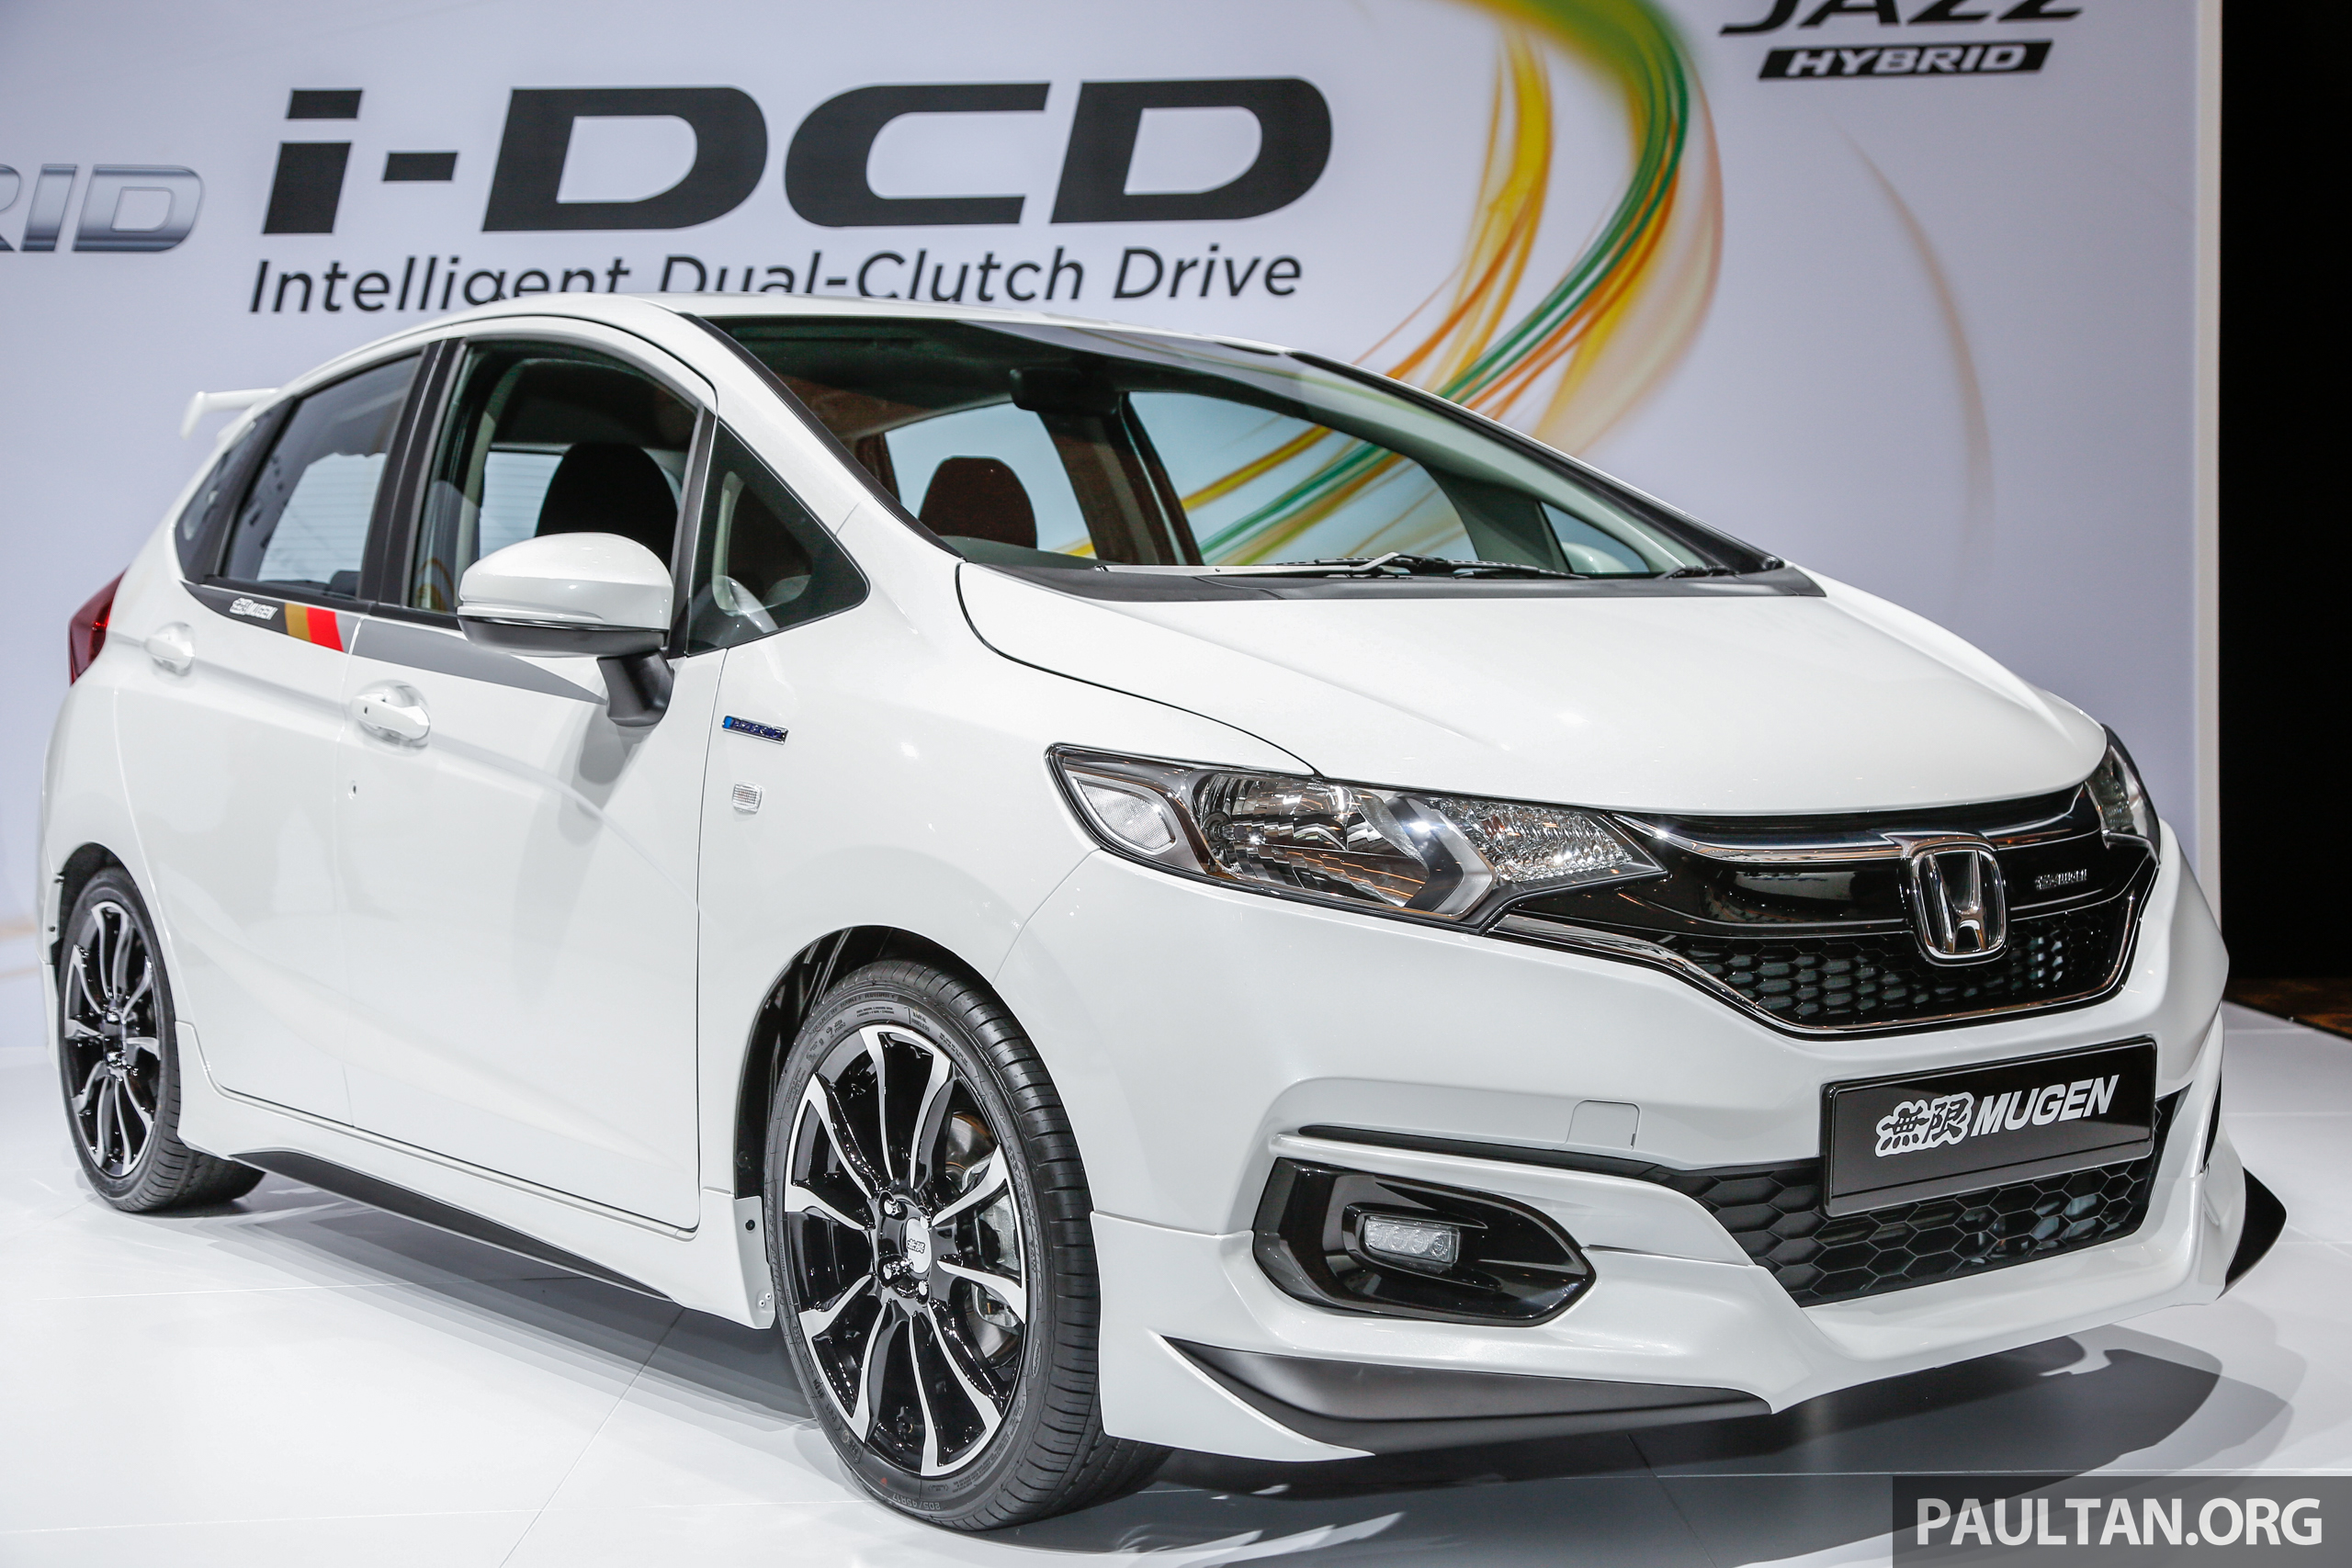 2017 honda jazz facelift mugen prototype with bodykit accessories makes debut in malaysia. Black Bedroom Furniture Sets. Home Design Ideas